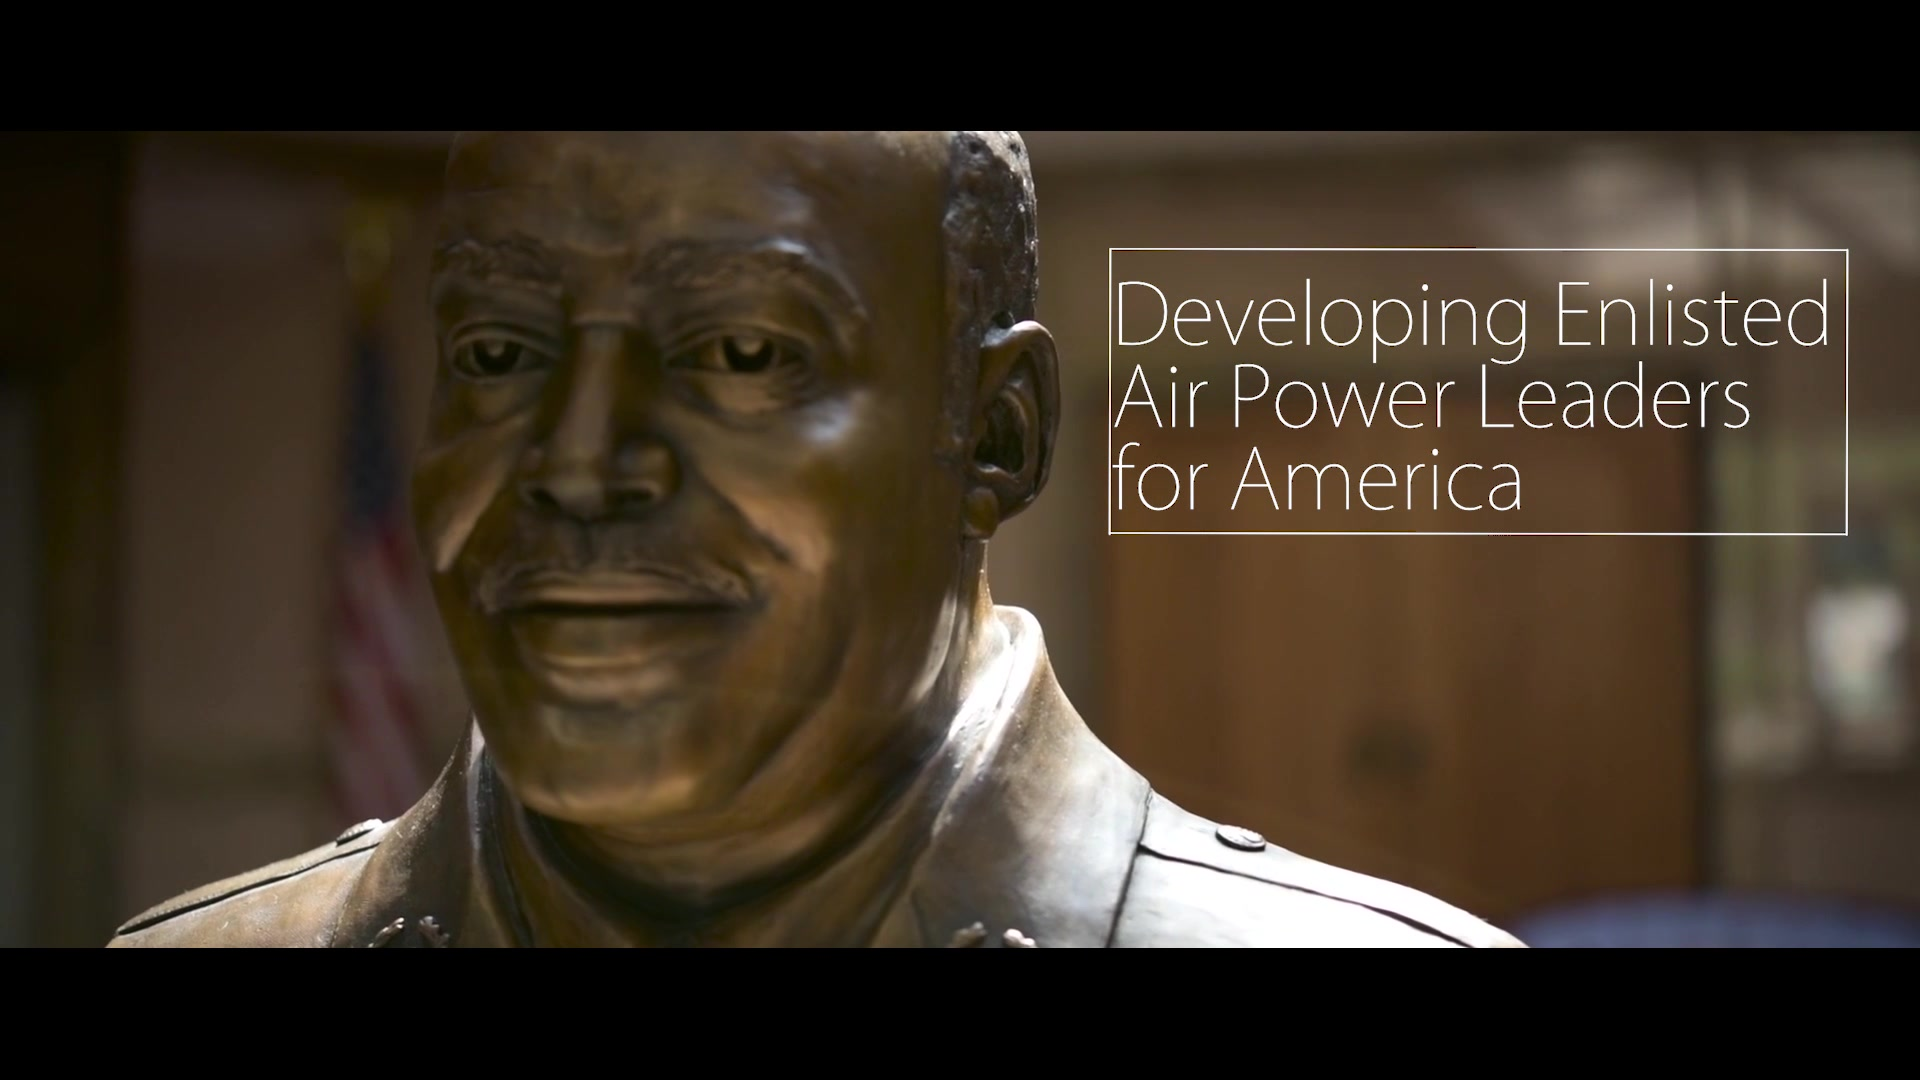 Air Force Enlisted Professional Military Education (EPME) is created and provided through the Thomas N. Barnes Center for Enlisted Education, named after the service's fourth Chief Master Sergeant of the Air Force, Thomas N. Barnes, the first African-American to attain the highest enlisted position in any branch of the U.S. Armed Forces.